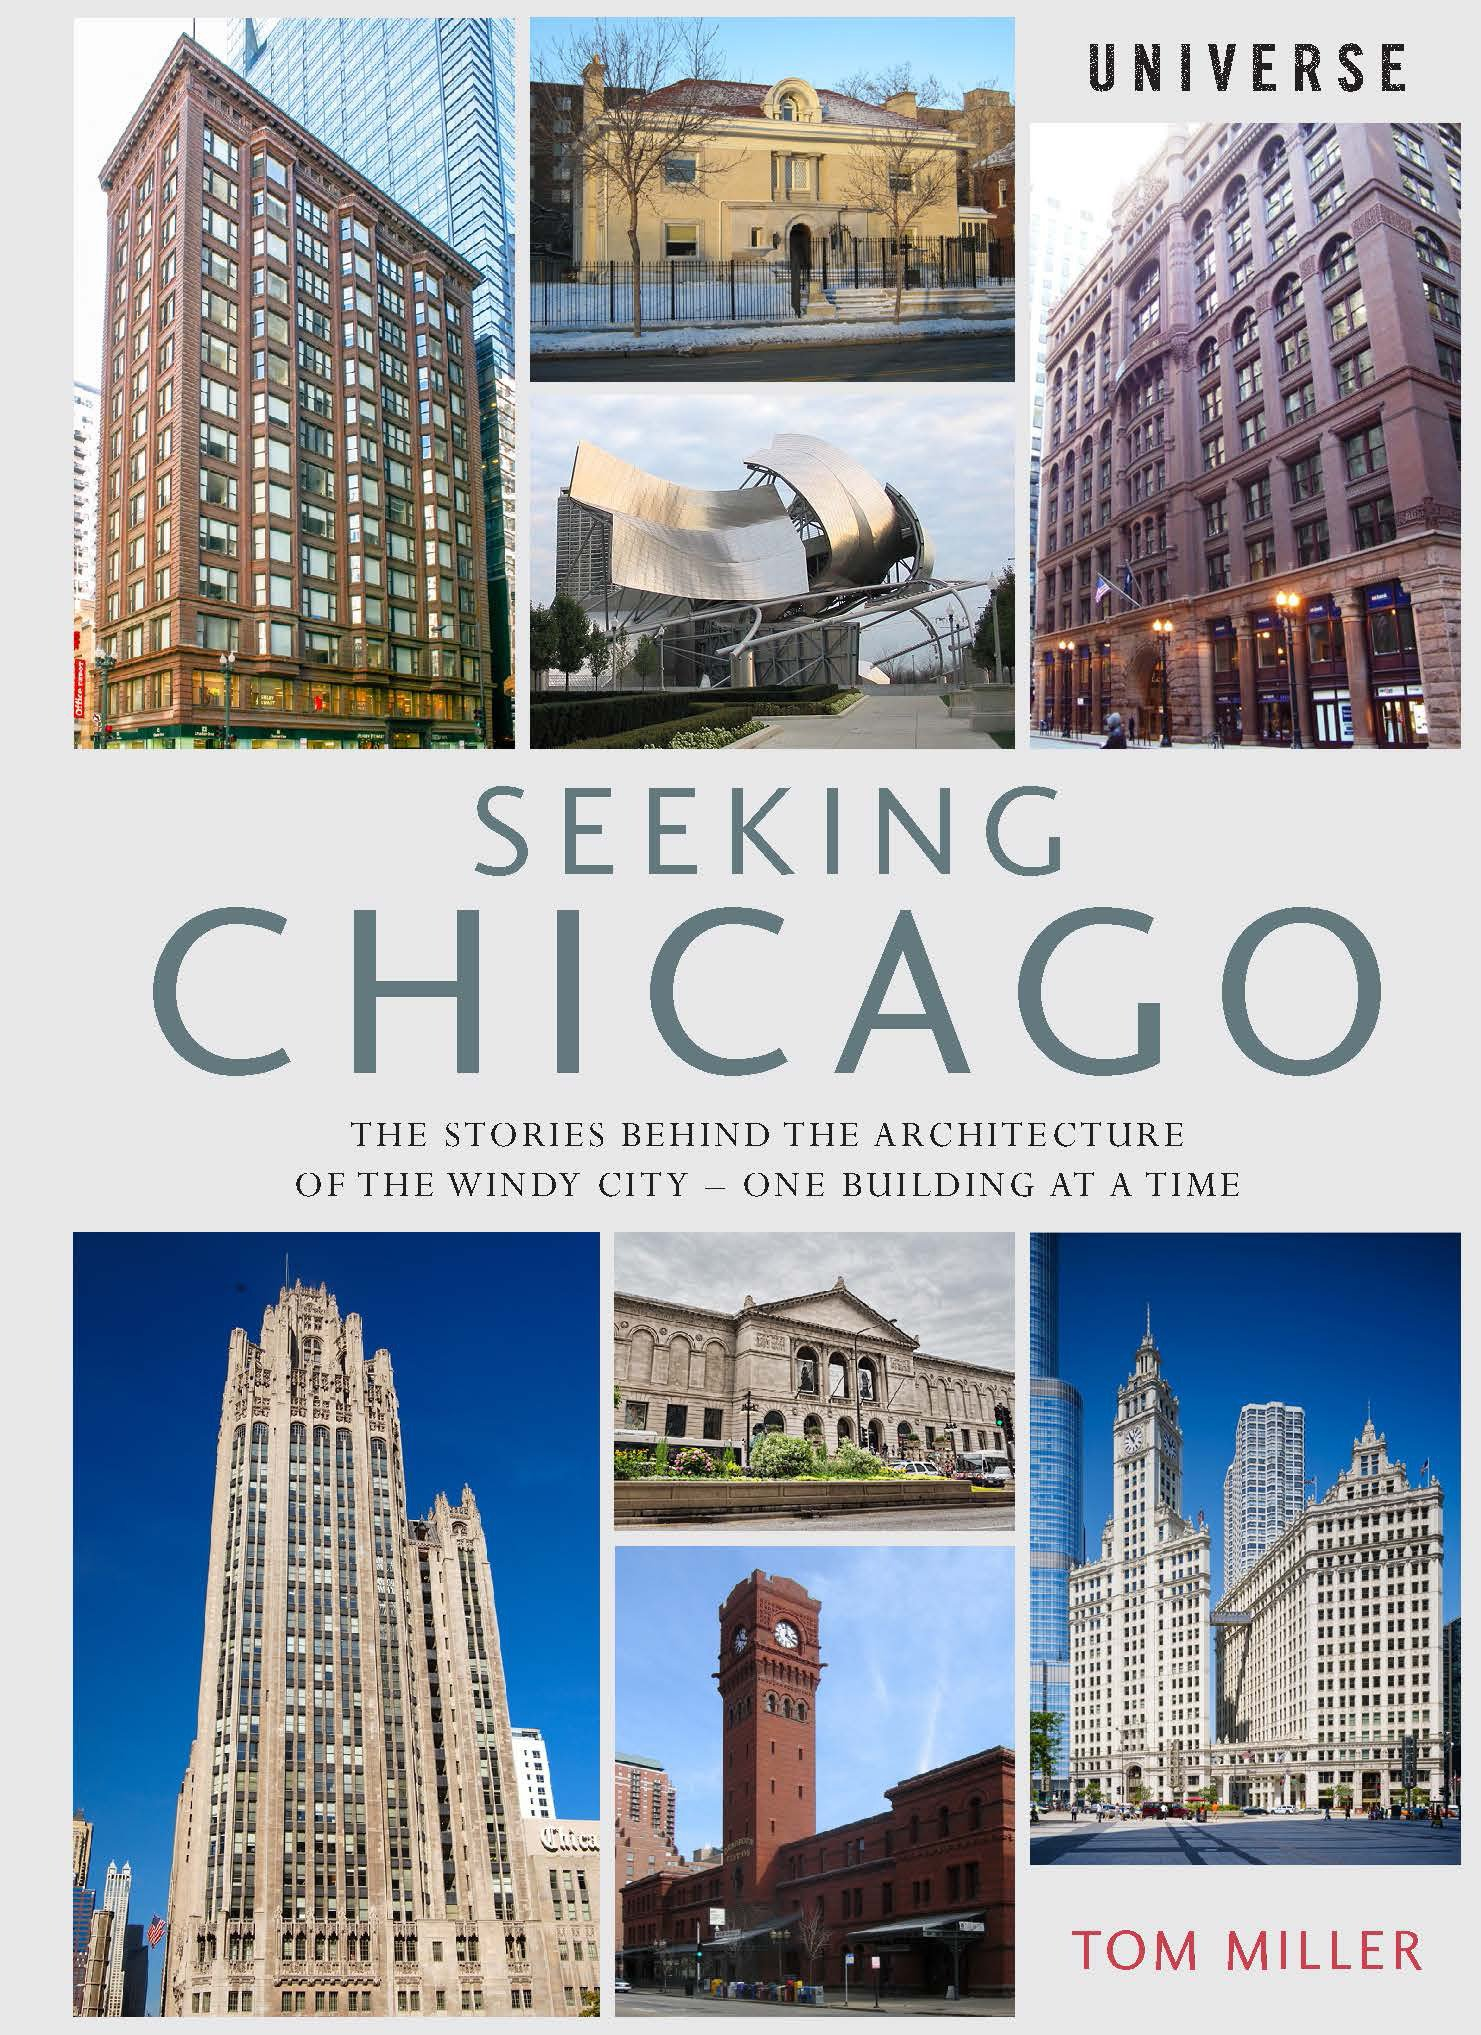 Seeking Chicago: The Stories Behind the Architecture of the